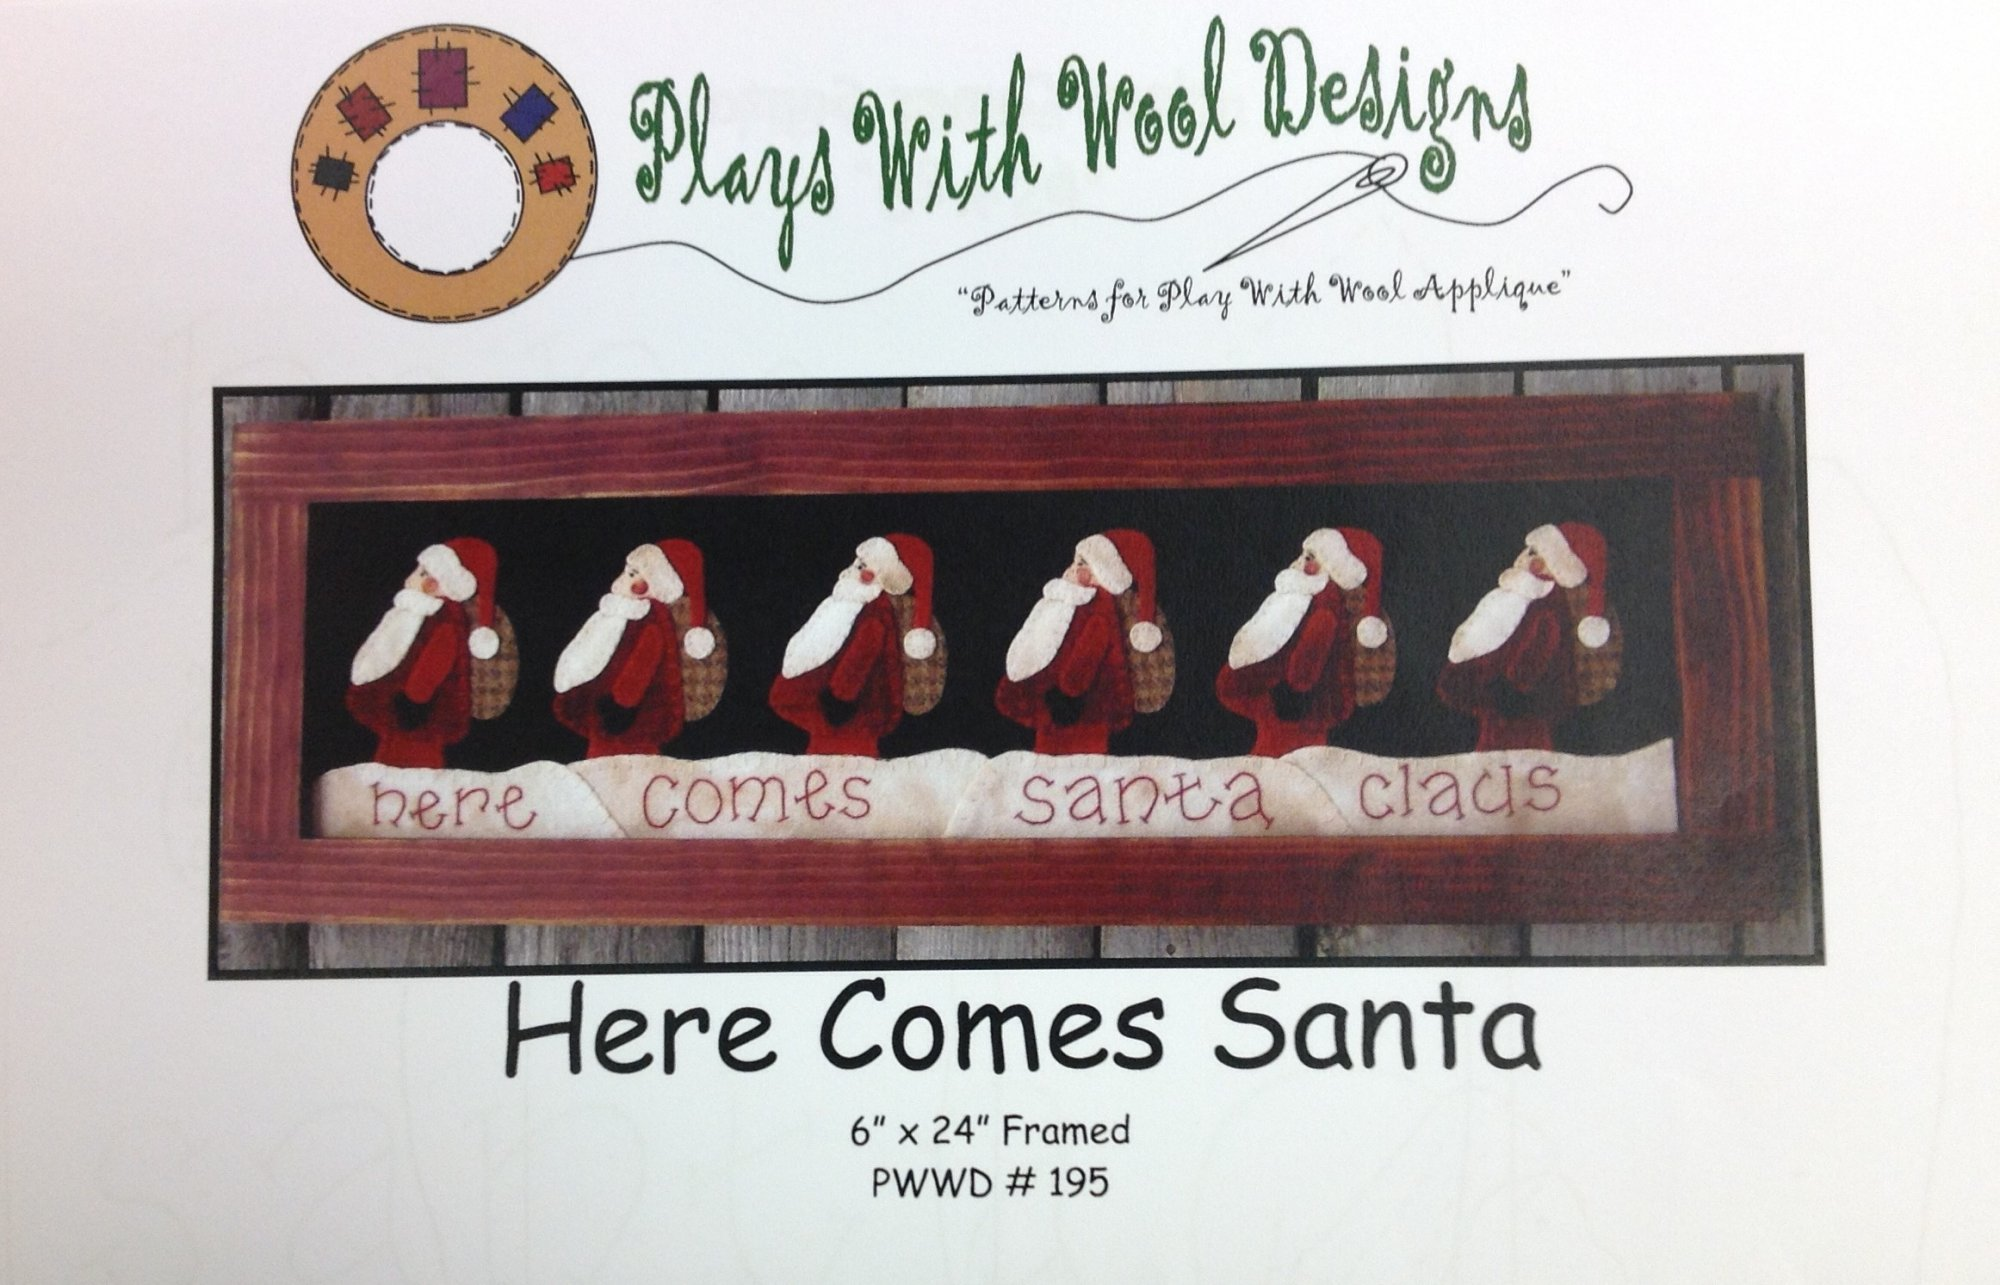 Here Comes Santa by Plays With Wool Designs